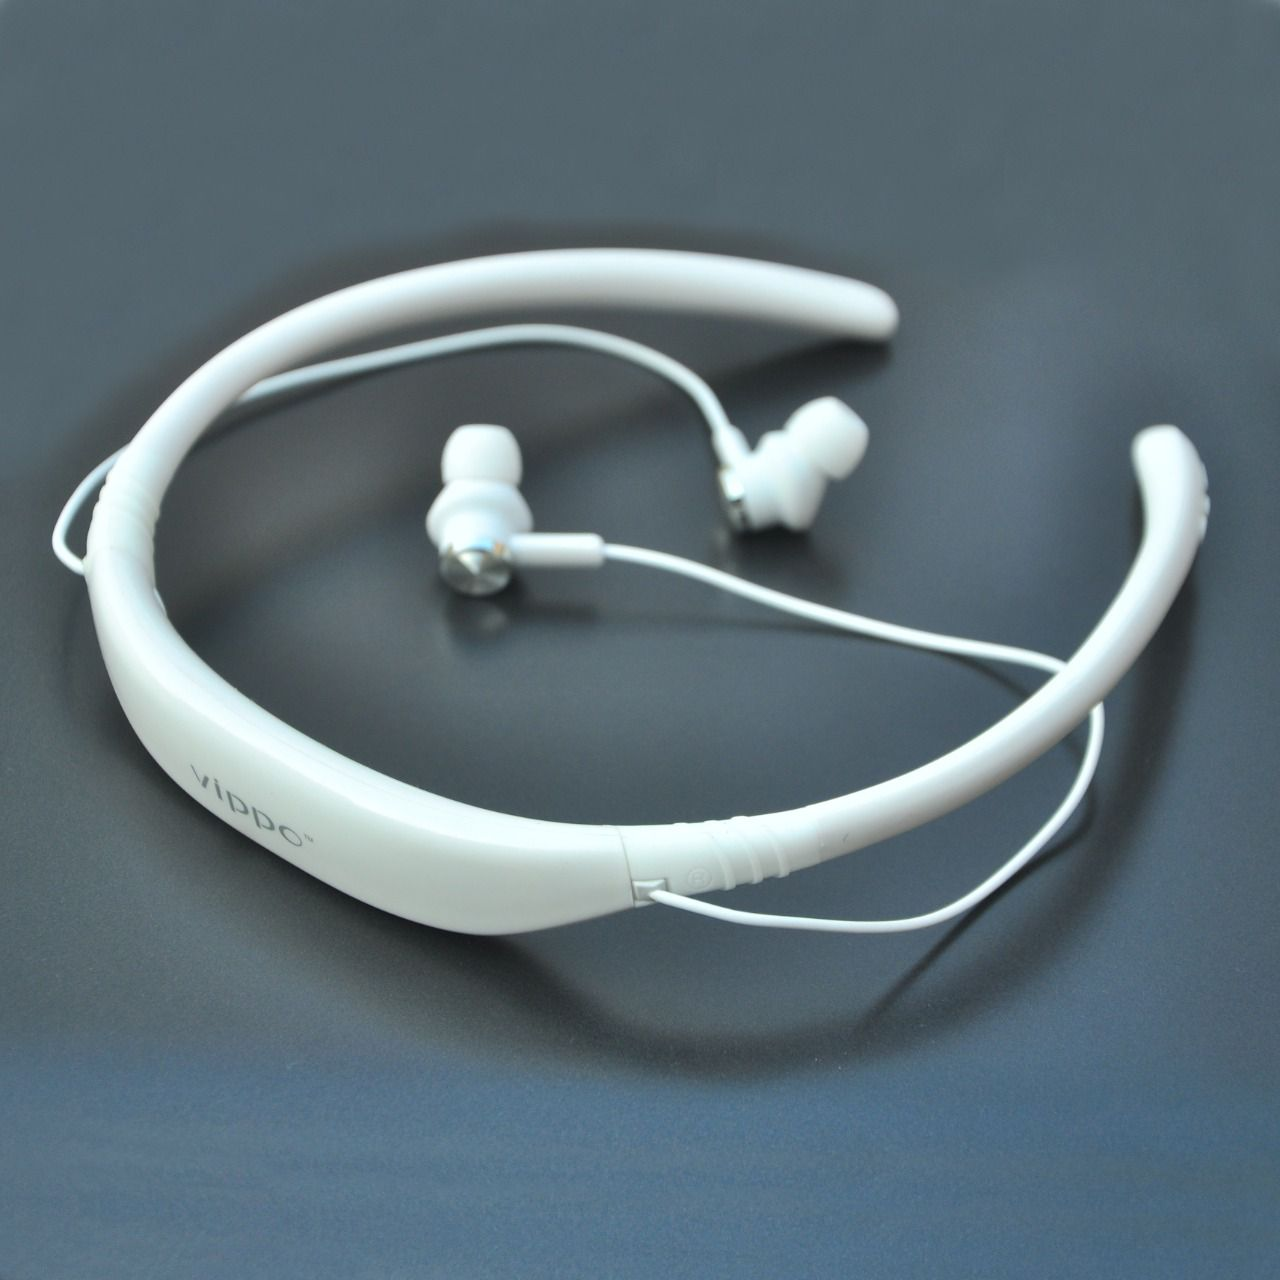 VIPPO LEVEL U NECKBAND EXTREME MP3 Players